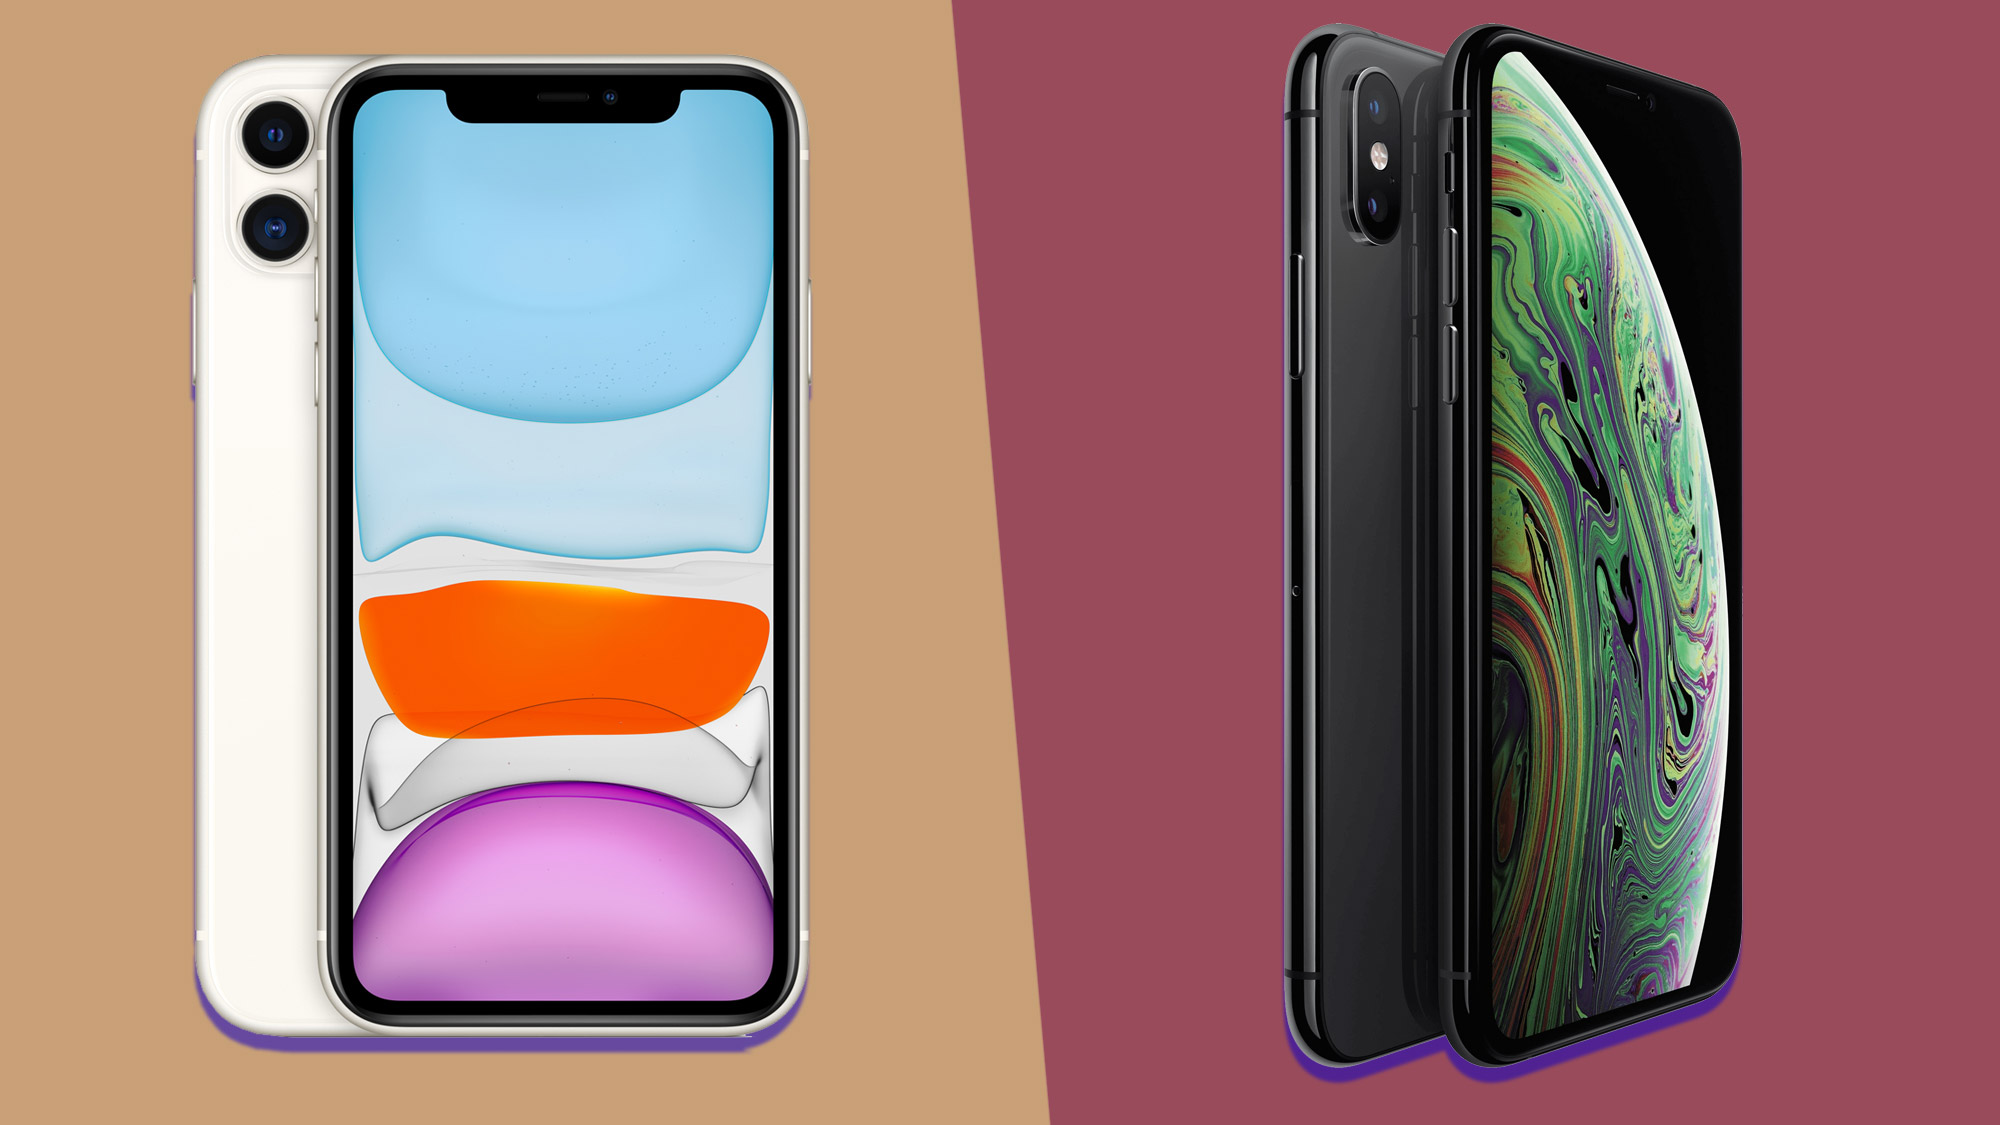 Iphone 11 Vs Iphone Xs We Compare The New And The Old Apple Flagships Techradar